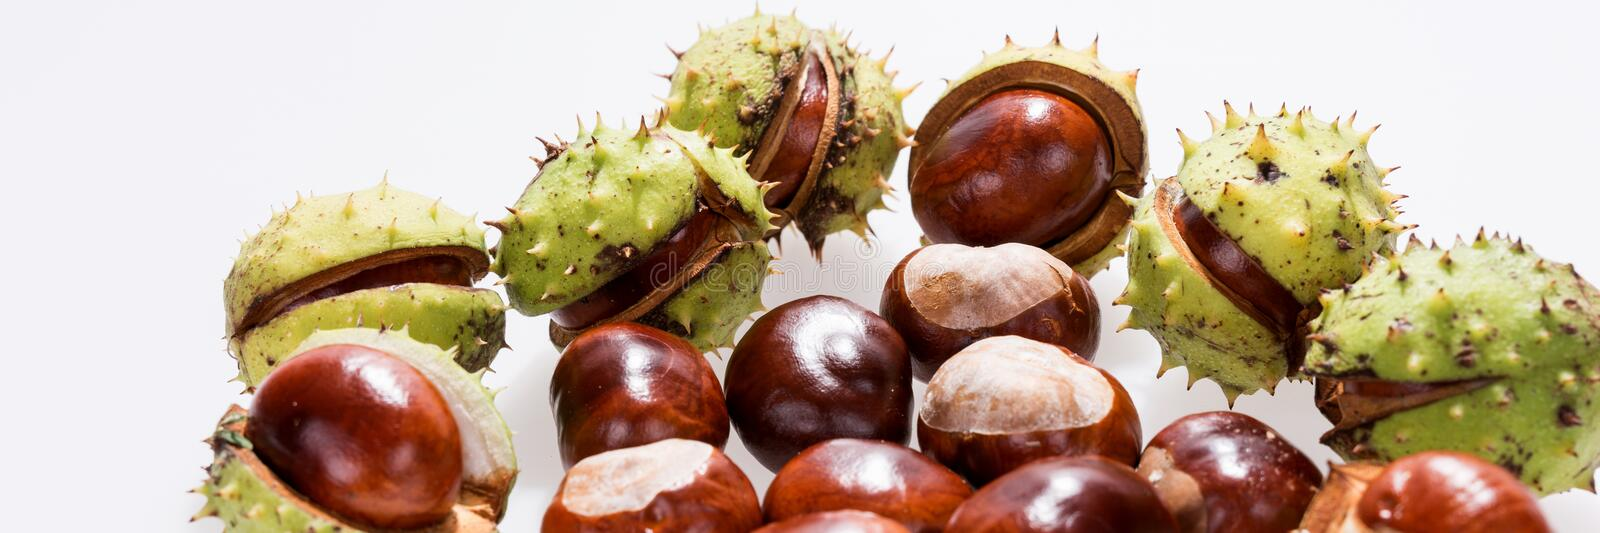 Chestnuts isolated on white, fruits chestnut, Panoramic image. Chestnuts isolated on white, fruits chestnut, Aesculus hippocastanum. Panoramic image royalty free stock photography